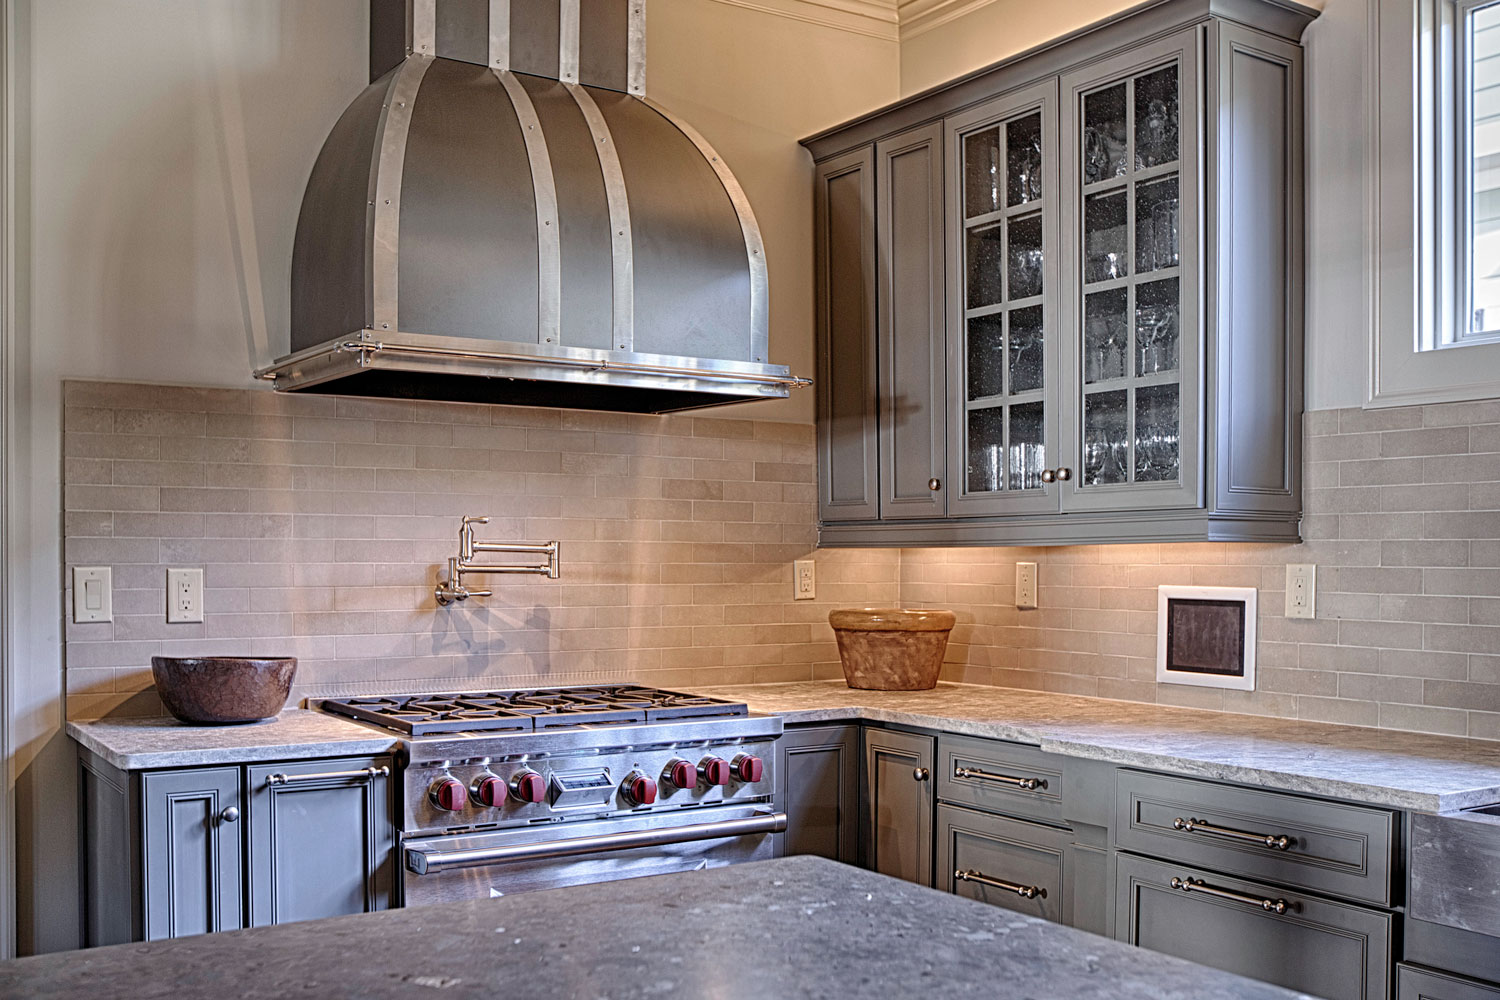 The lower cabinet and countertop have variable depths.